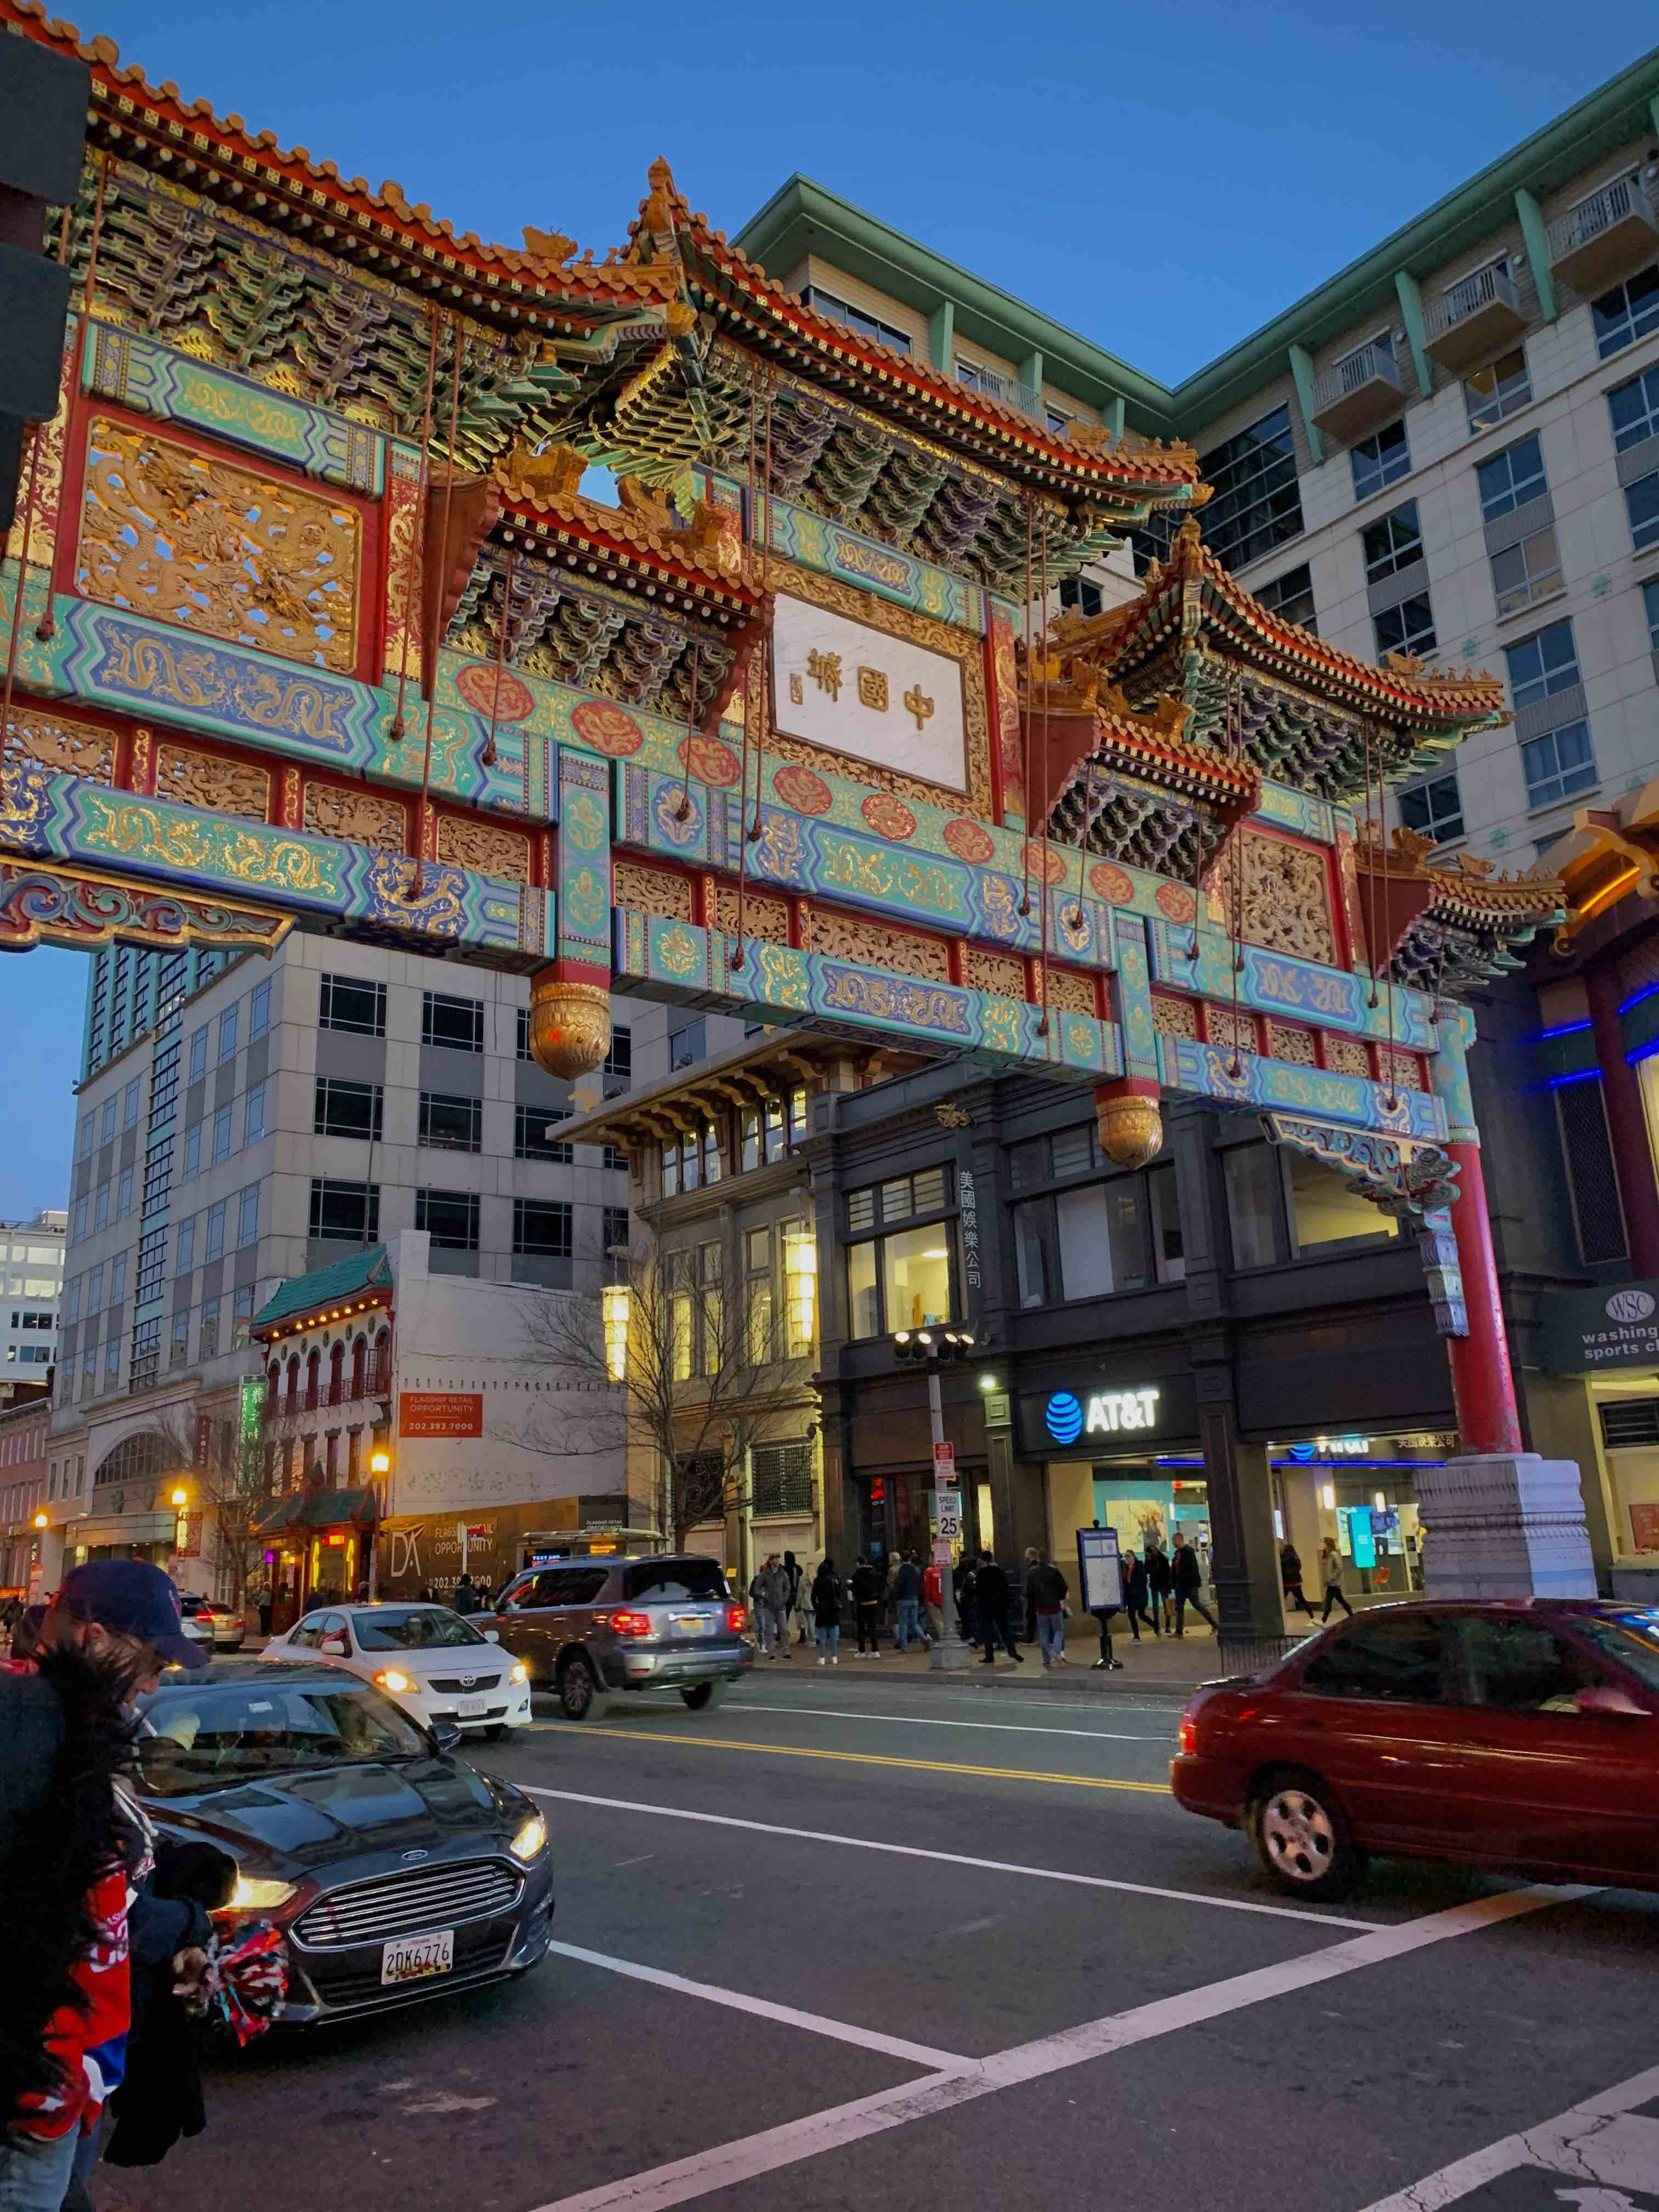 An overpass in Chinatown, Washington, DC fit with colors and accents inspired by Chinese culture.